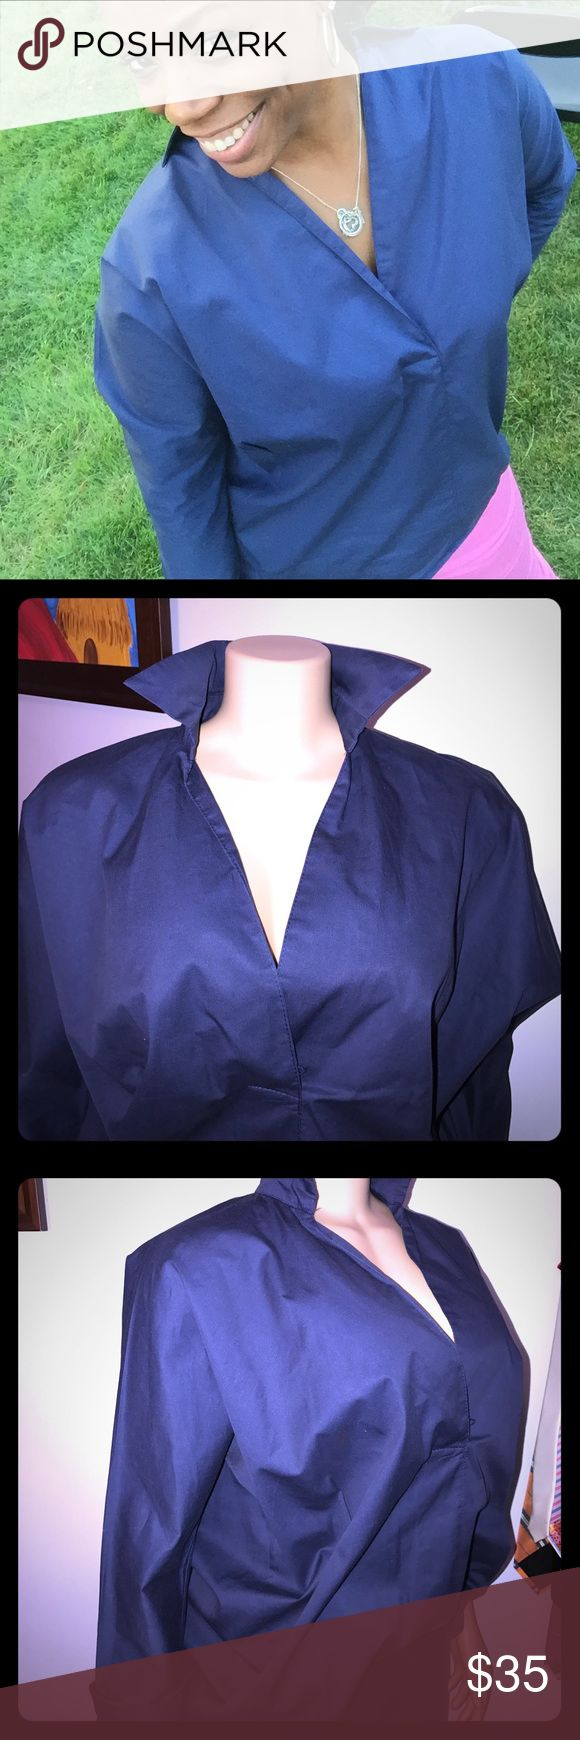 Beautiful Couture Tailored Shirt Available in Navy and White! Dress up or down. 100% cotton. 26 inch bust. (Oversized look) 26 inch long with high low bottom. Buttons in back but fits over head. Tag says large but fits like a oversized small. Excellent condition. Boutique Tops Button Down Shirts